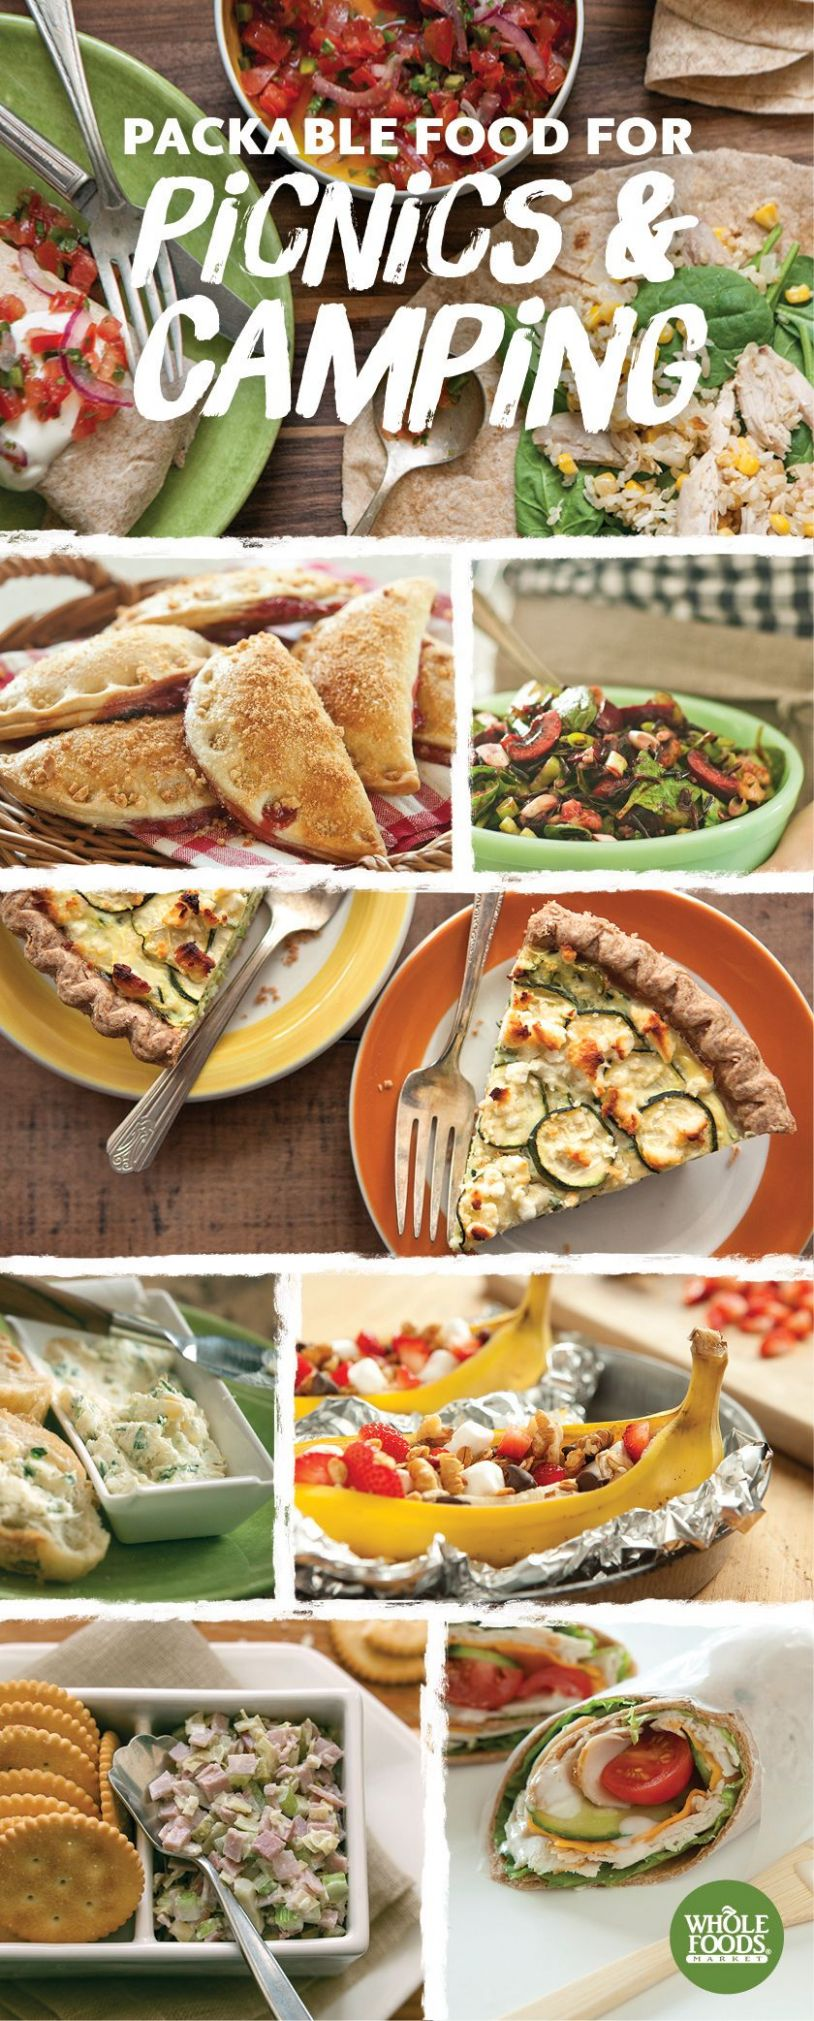 Foods for Picnics and Camping   Picnic foods, Food, Whole food recipes - Recipes Summer Buffet Lunch